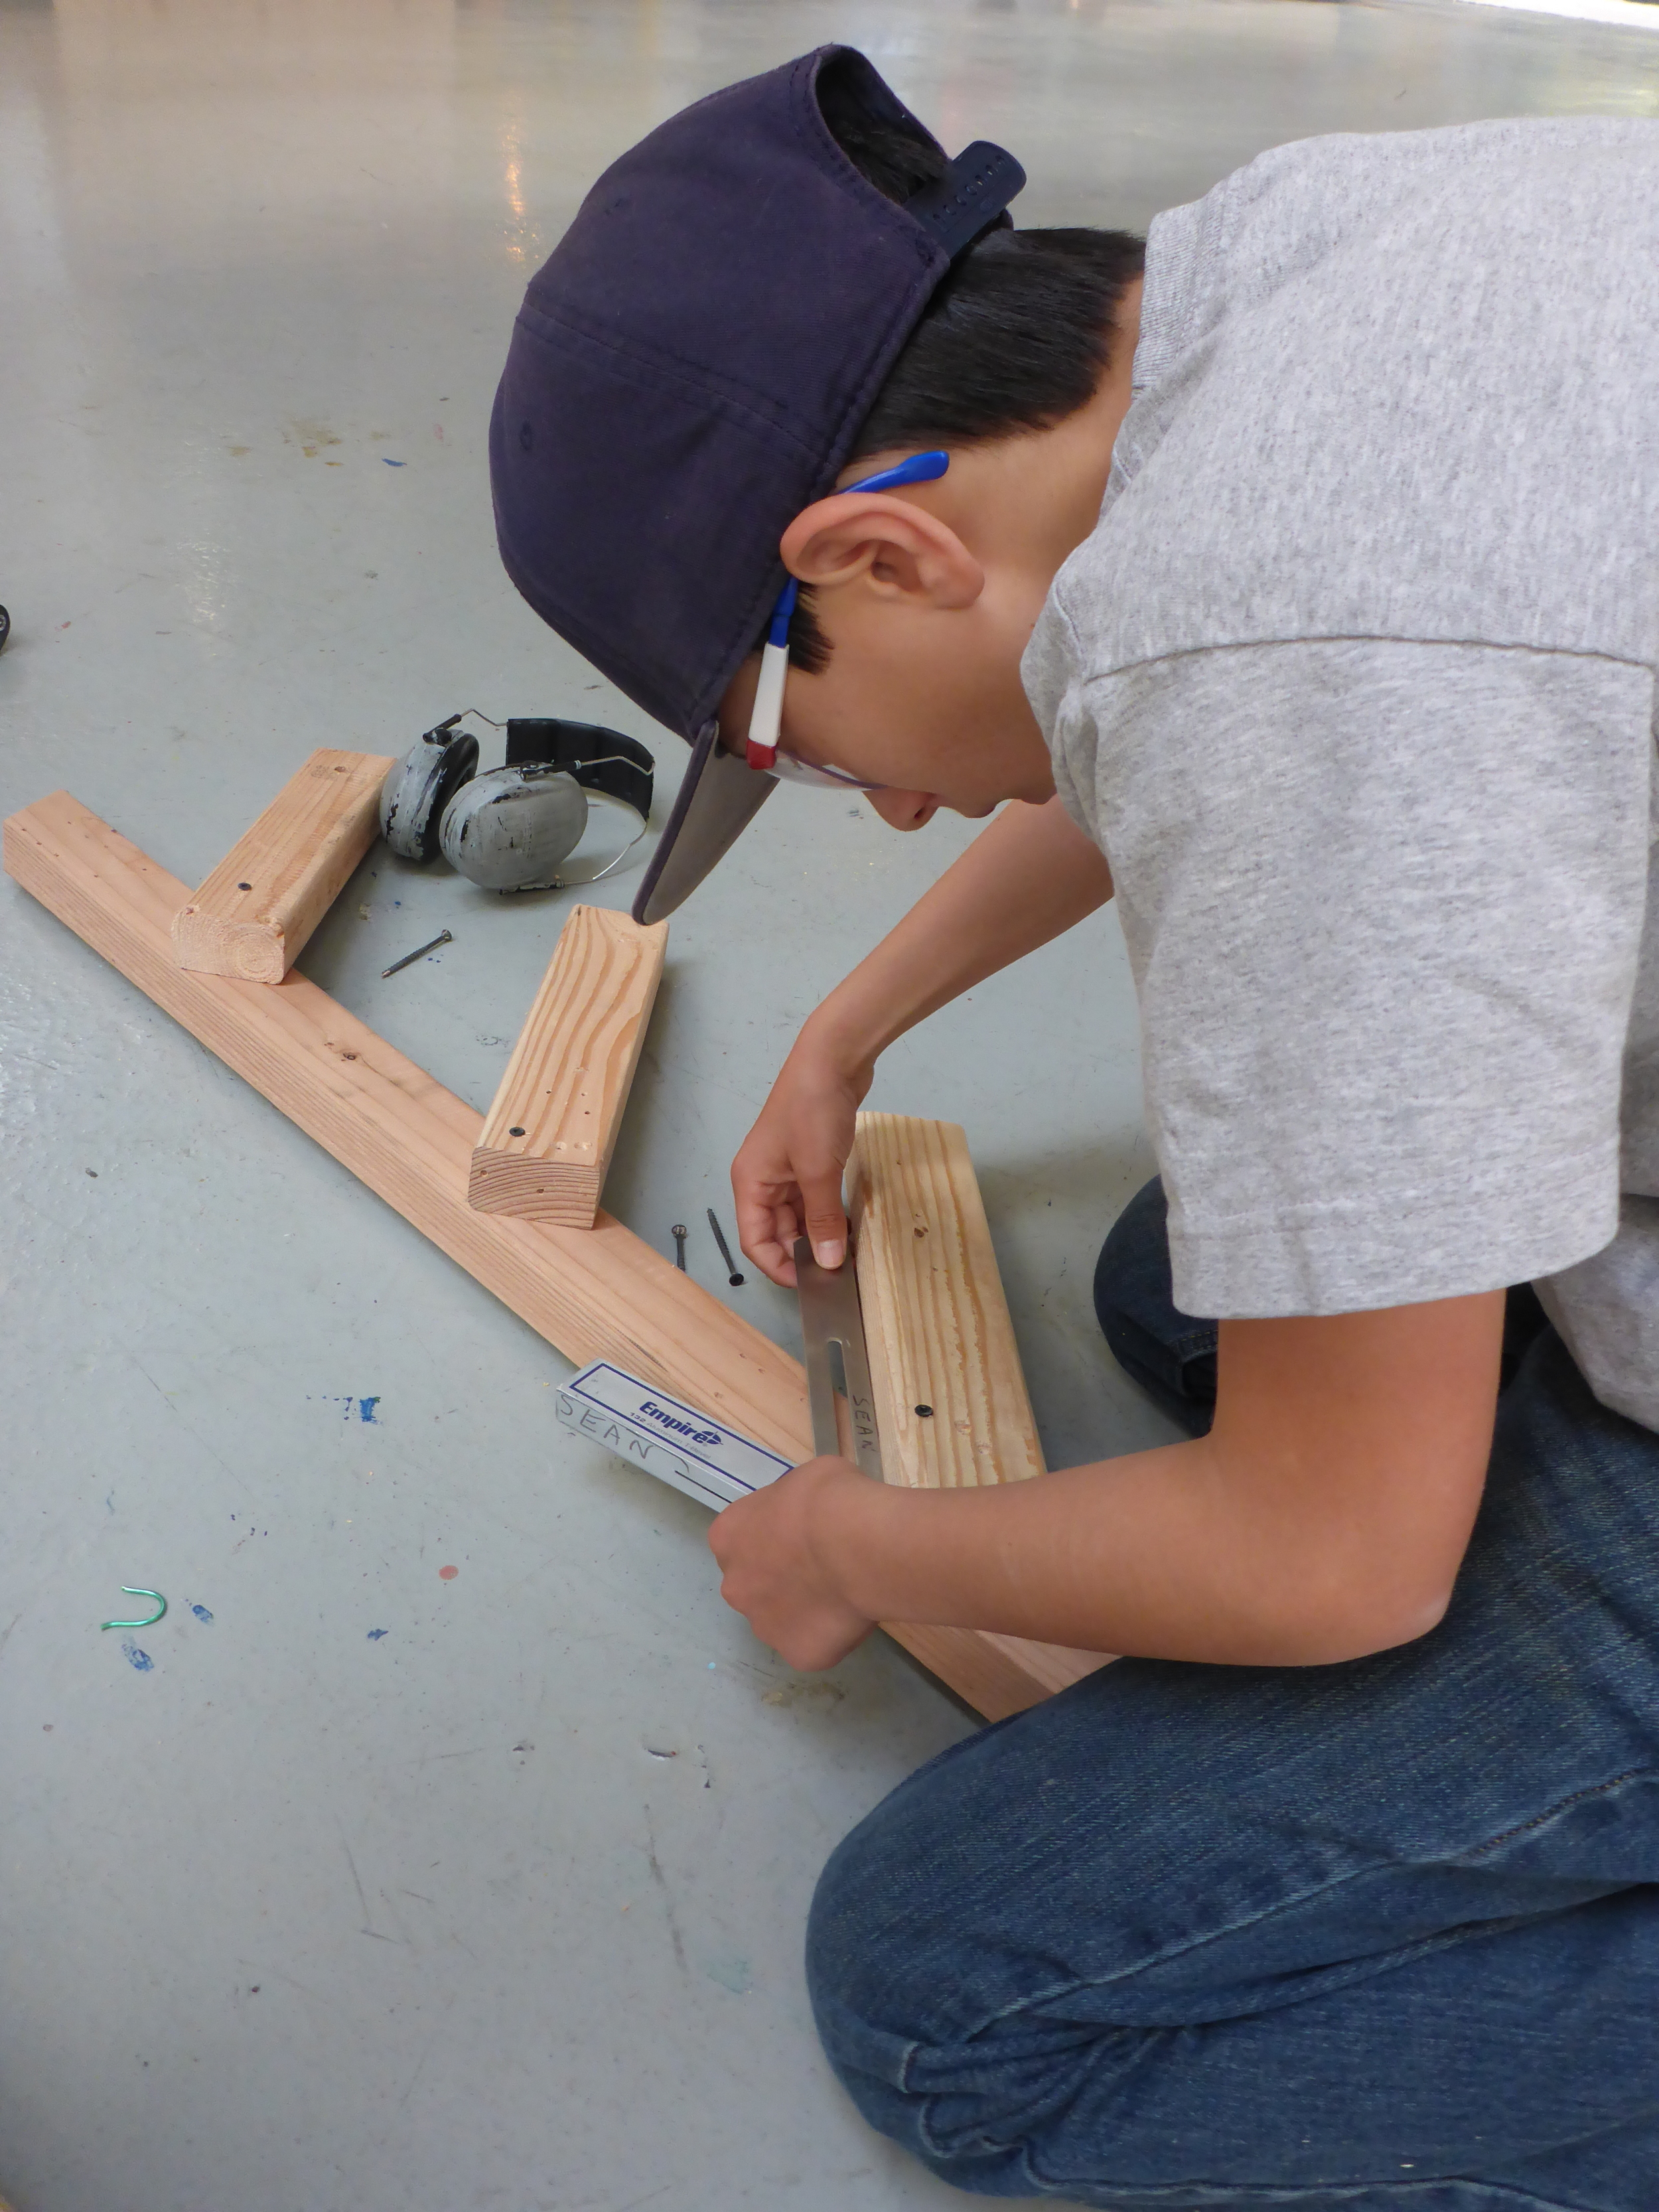 Alex measures the angles of one side of the stairs.